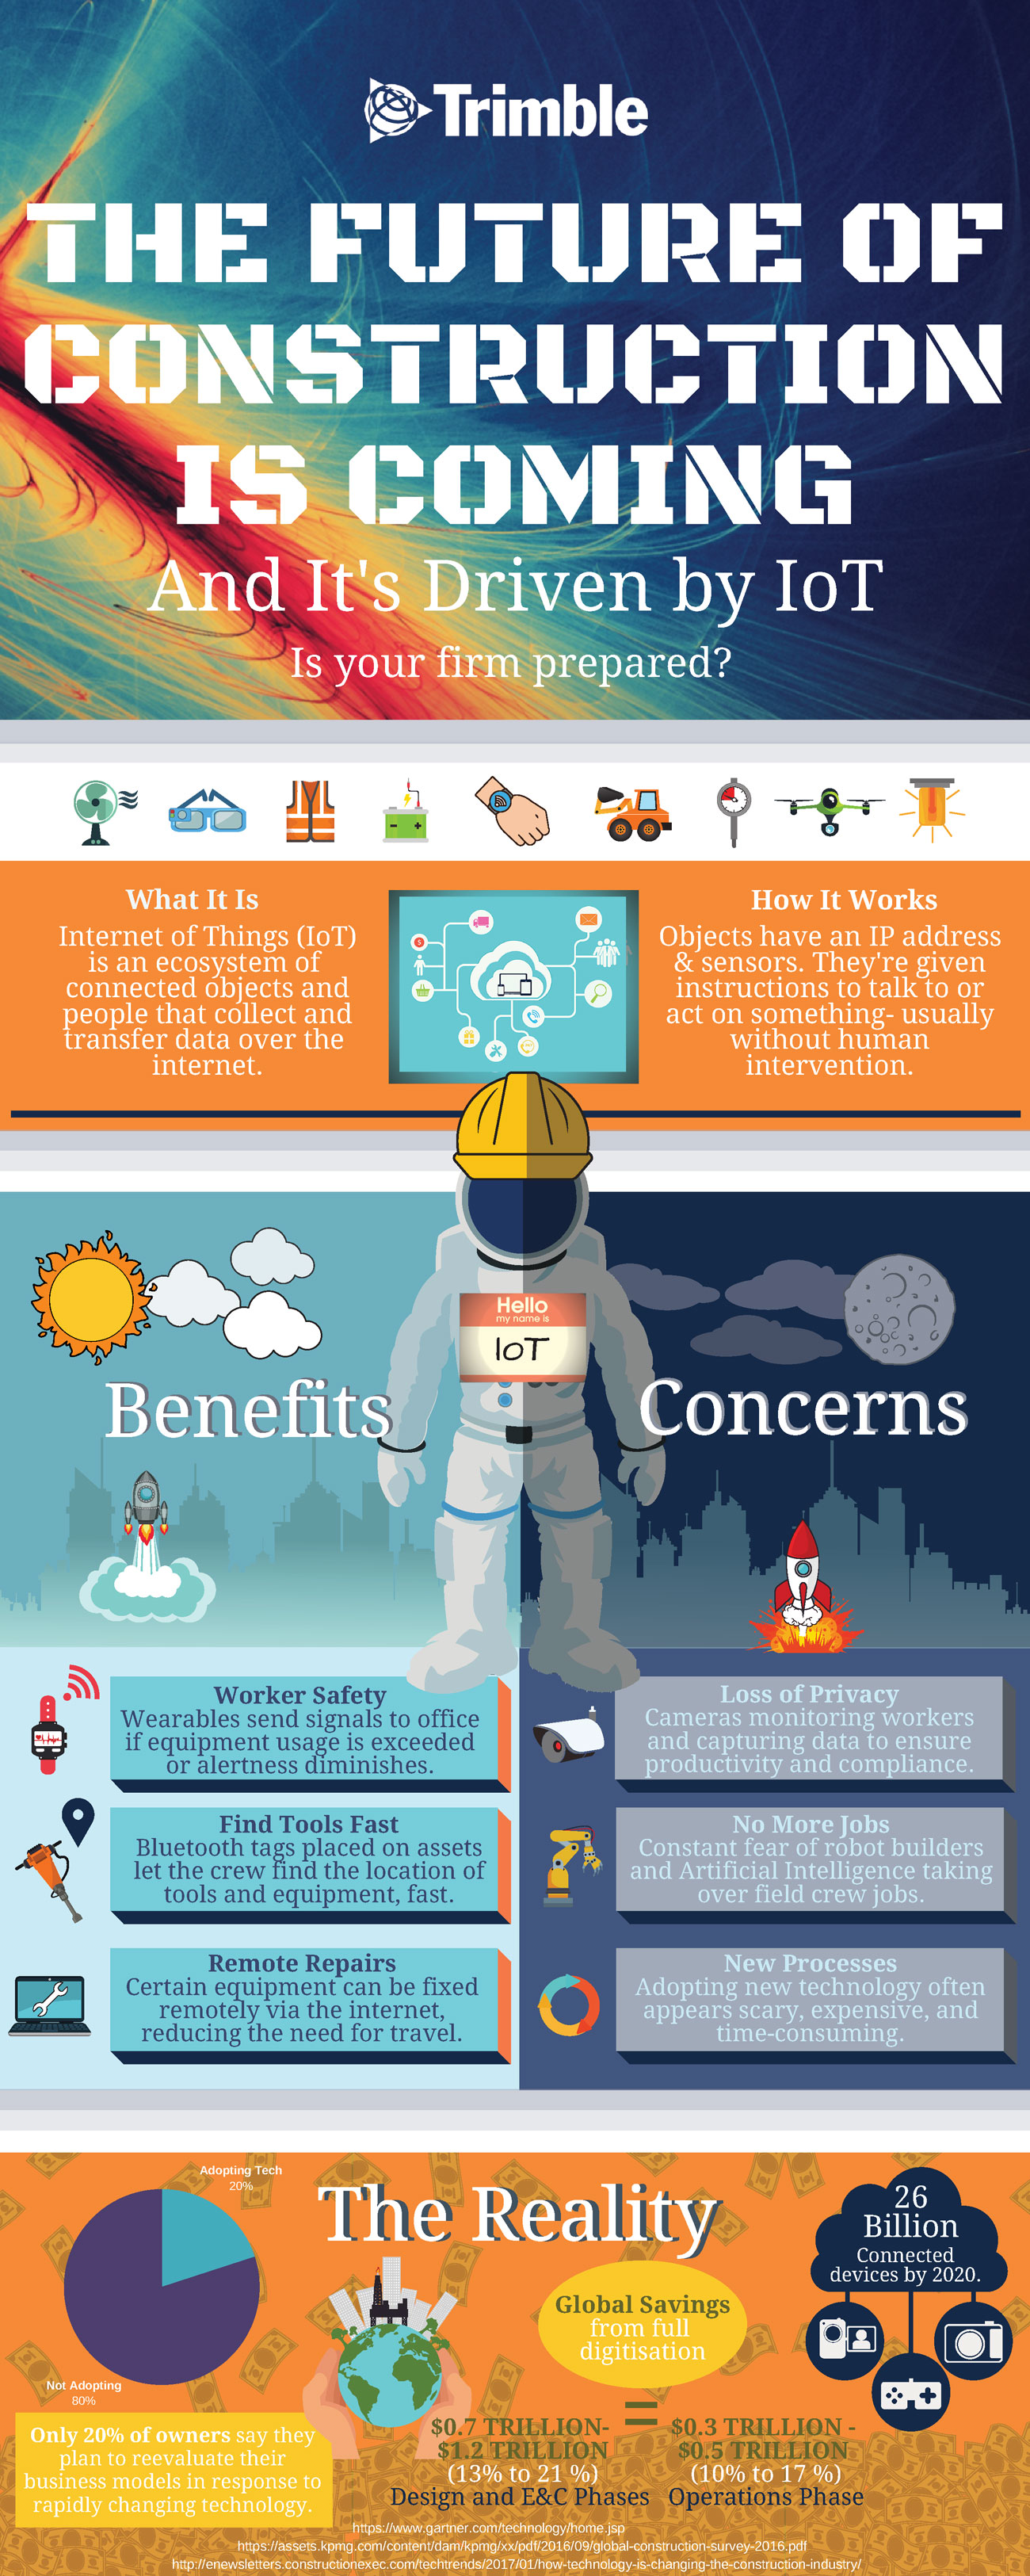 The Future of Construction Infographic